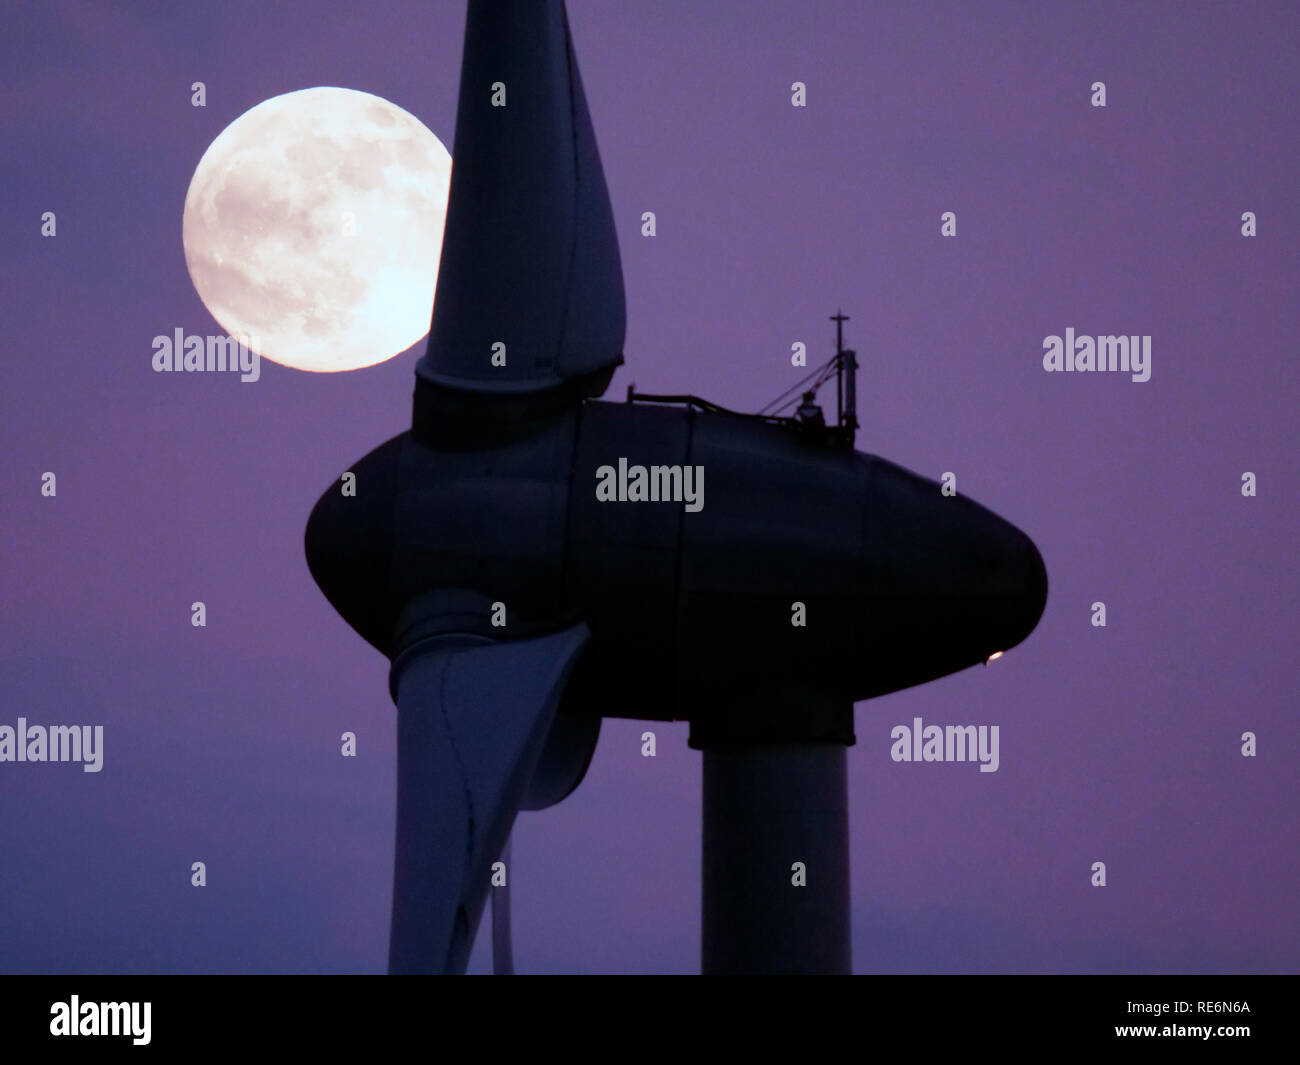 Peak District, UK. 20th Jan, 2019. Full Blood Wolf Super Moon rising over wind turbines at Griffe Grange near Wirksworth, Derbyshire Dales, Peak District, UK Credit: Doug Blane/Alamy Live News Stock Photo